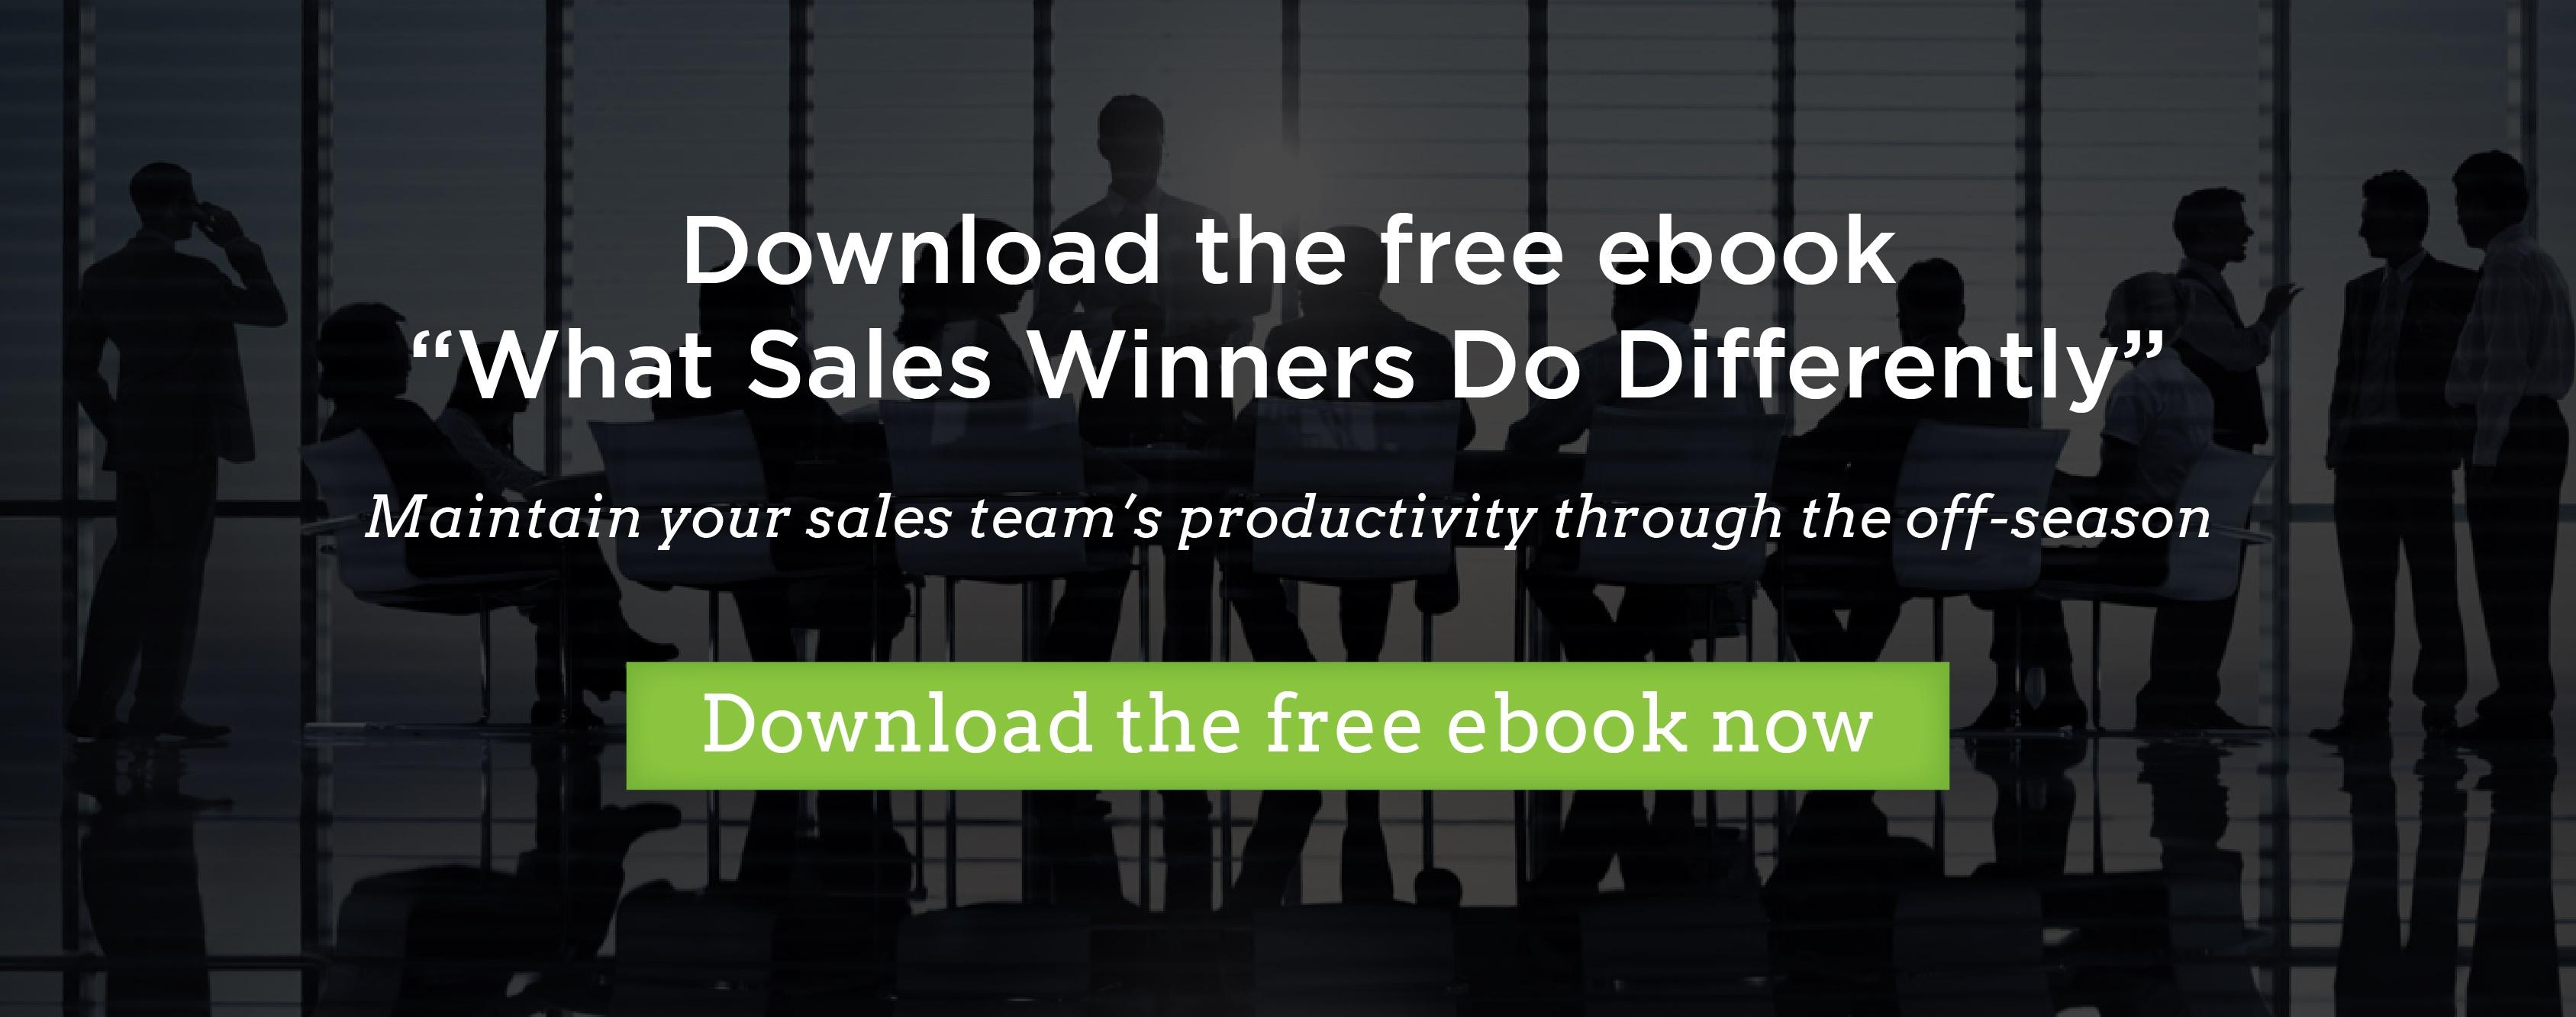 "Download the free ebook ""What sales winners do differently"""